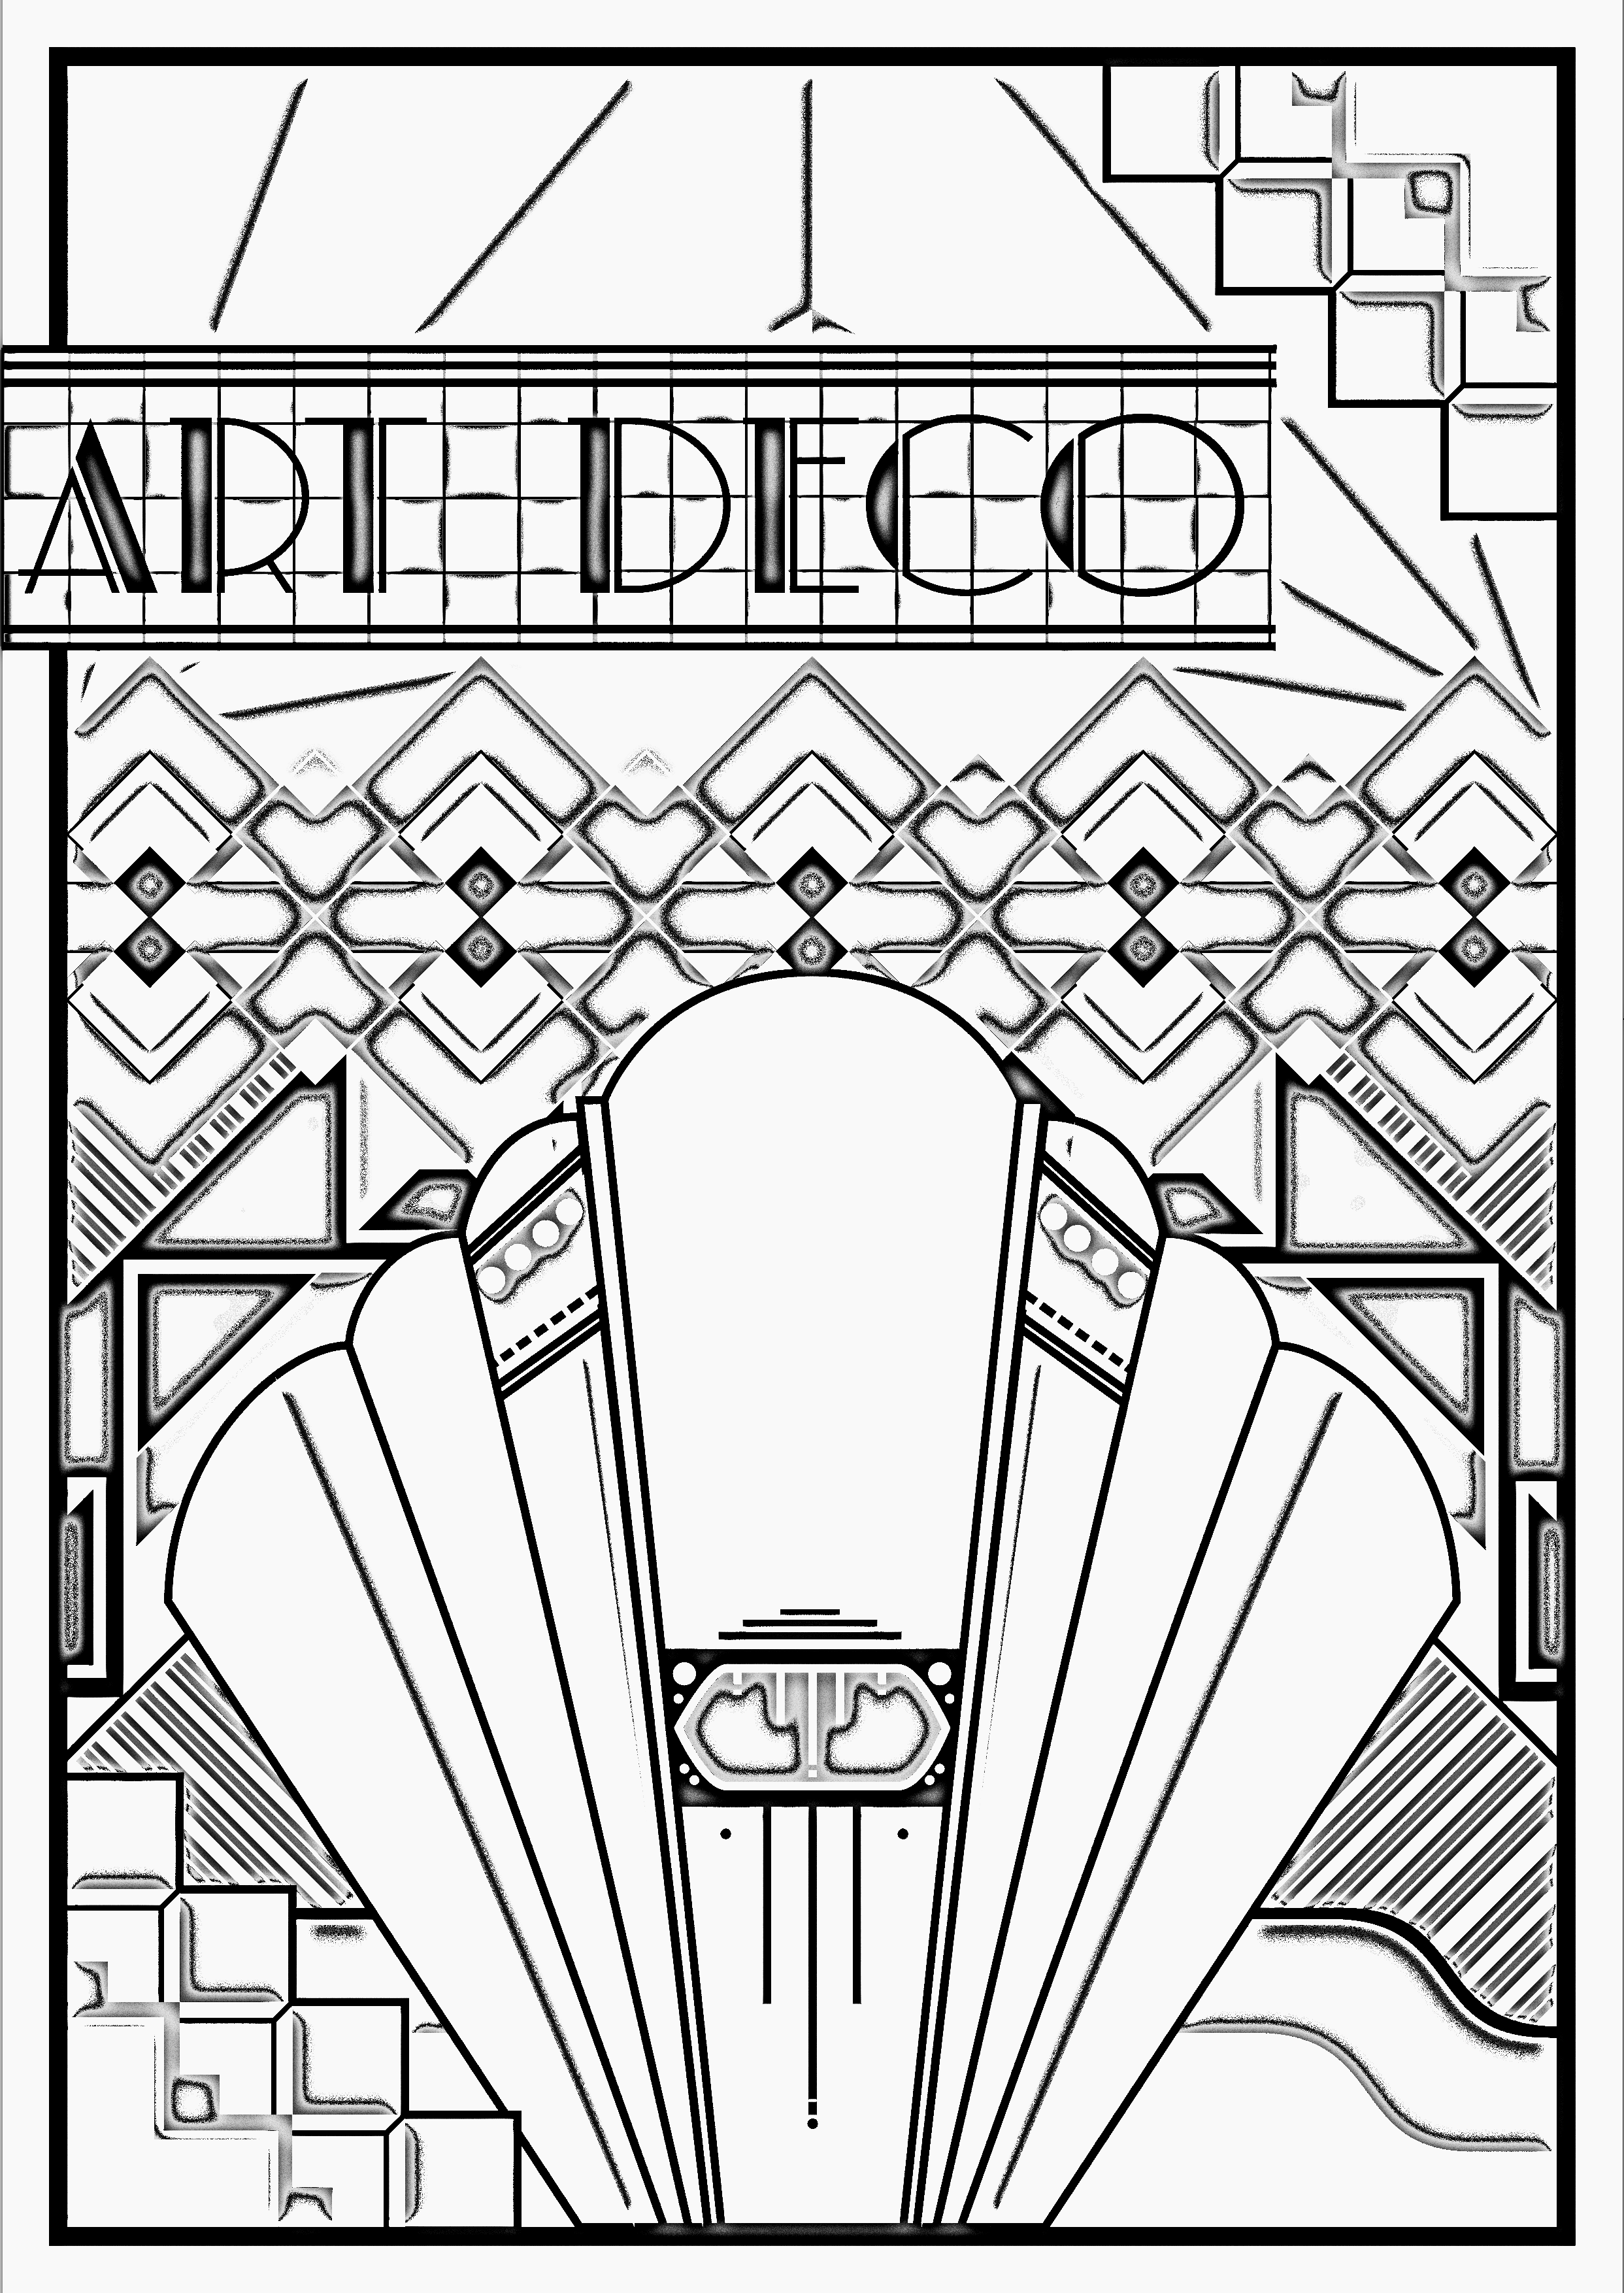 Art deco poster art deco adult coloring pages for Art color pages